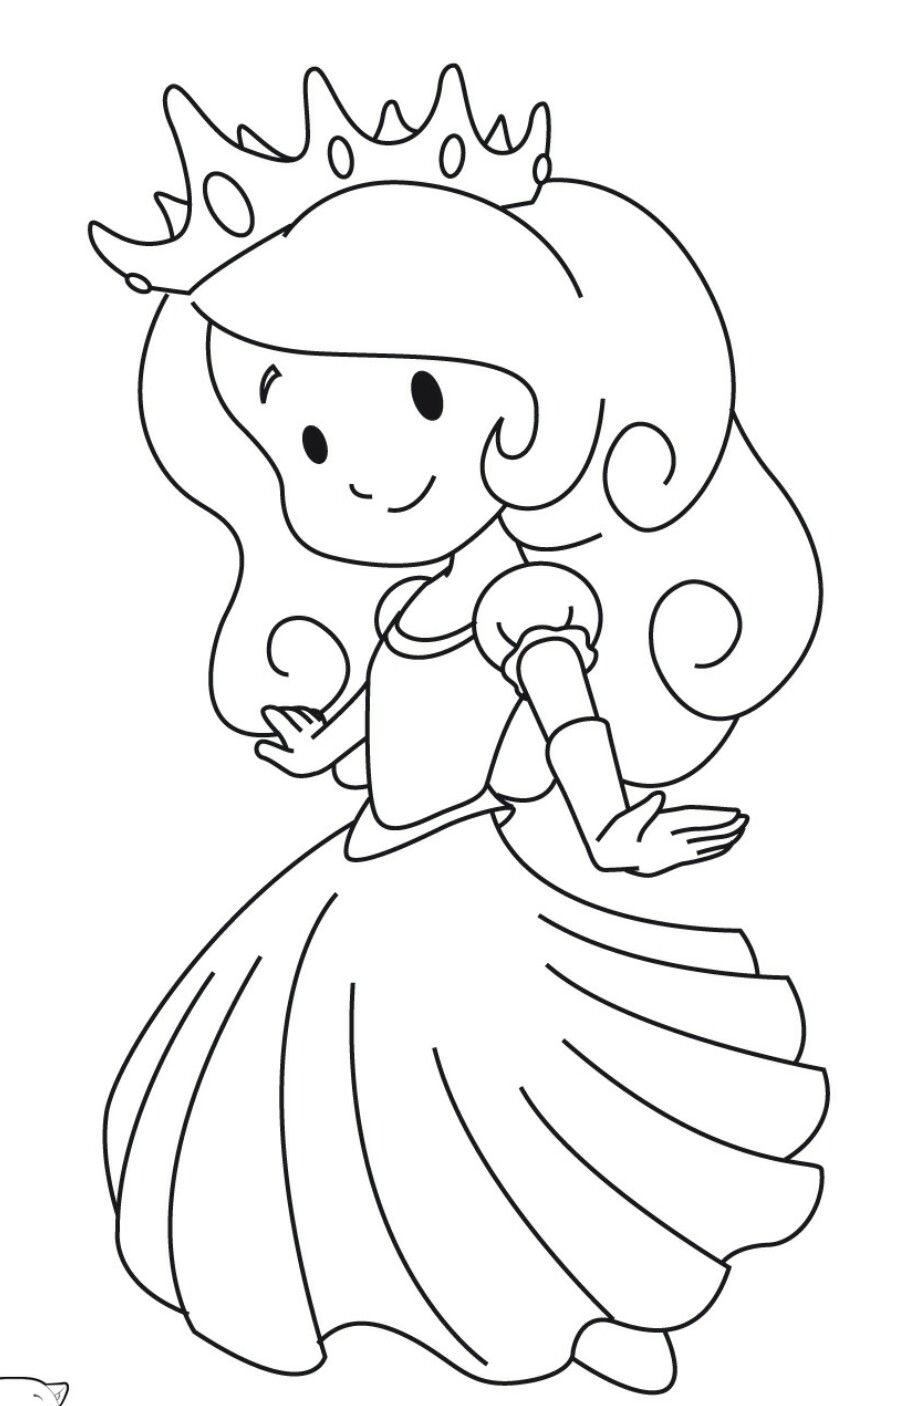 Pin By Anna Stanczyk On Cameo Personnages Princess Coloring Pages Mario Coloring Pages Cool Coloring Pages